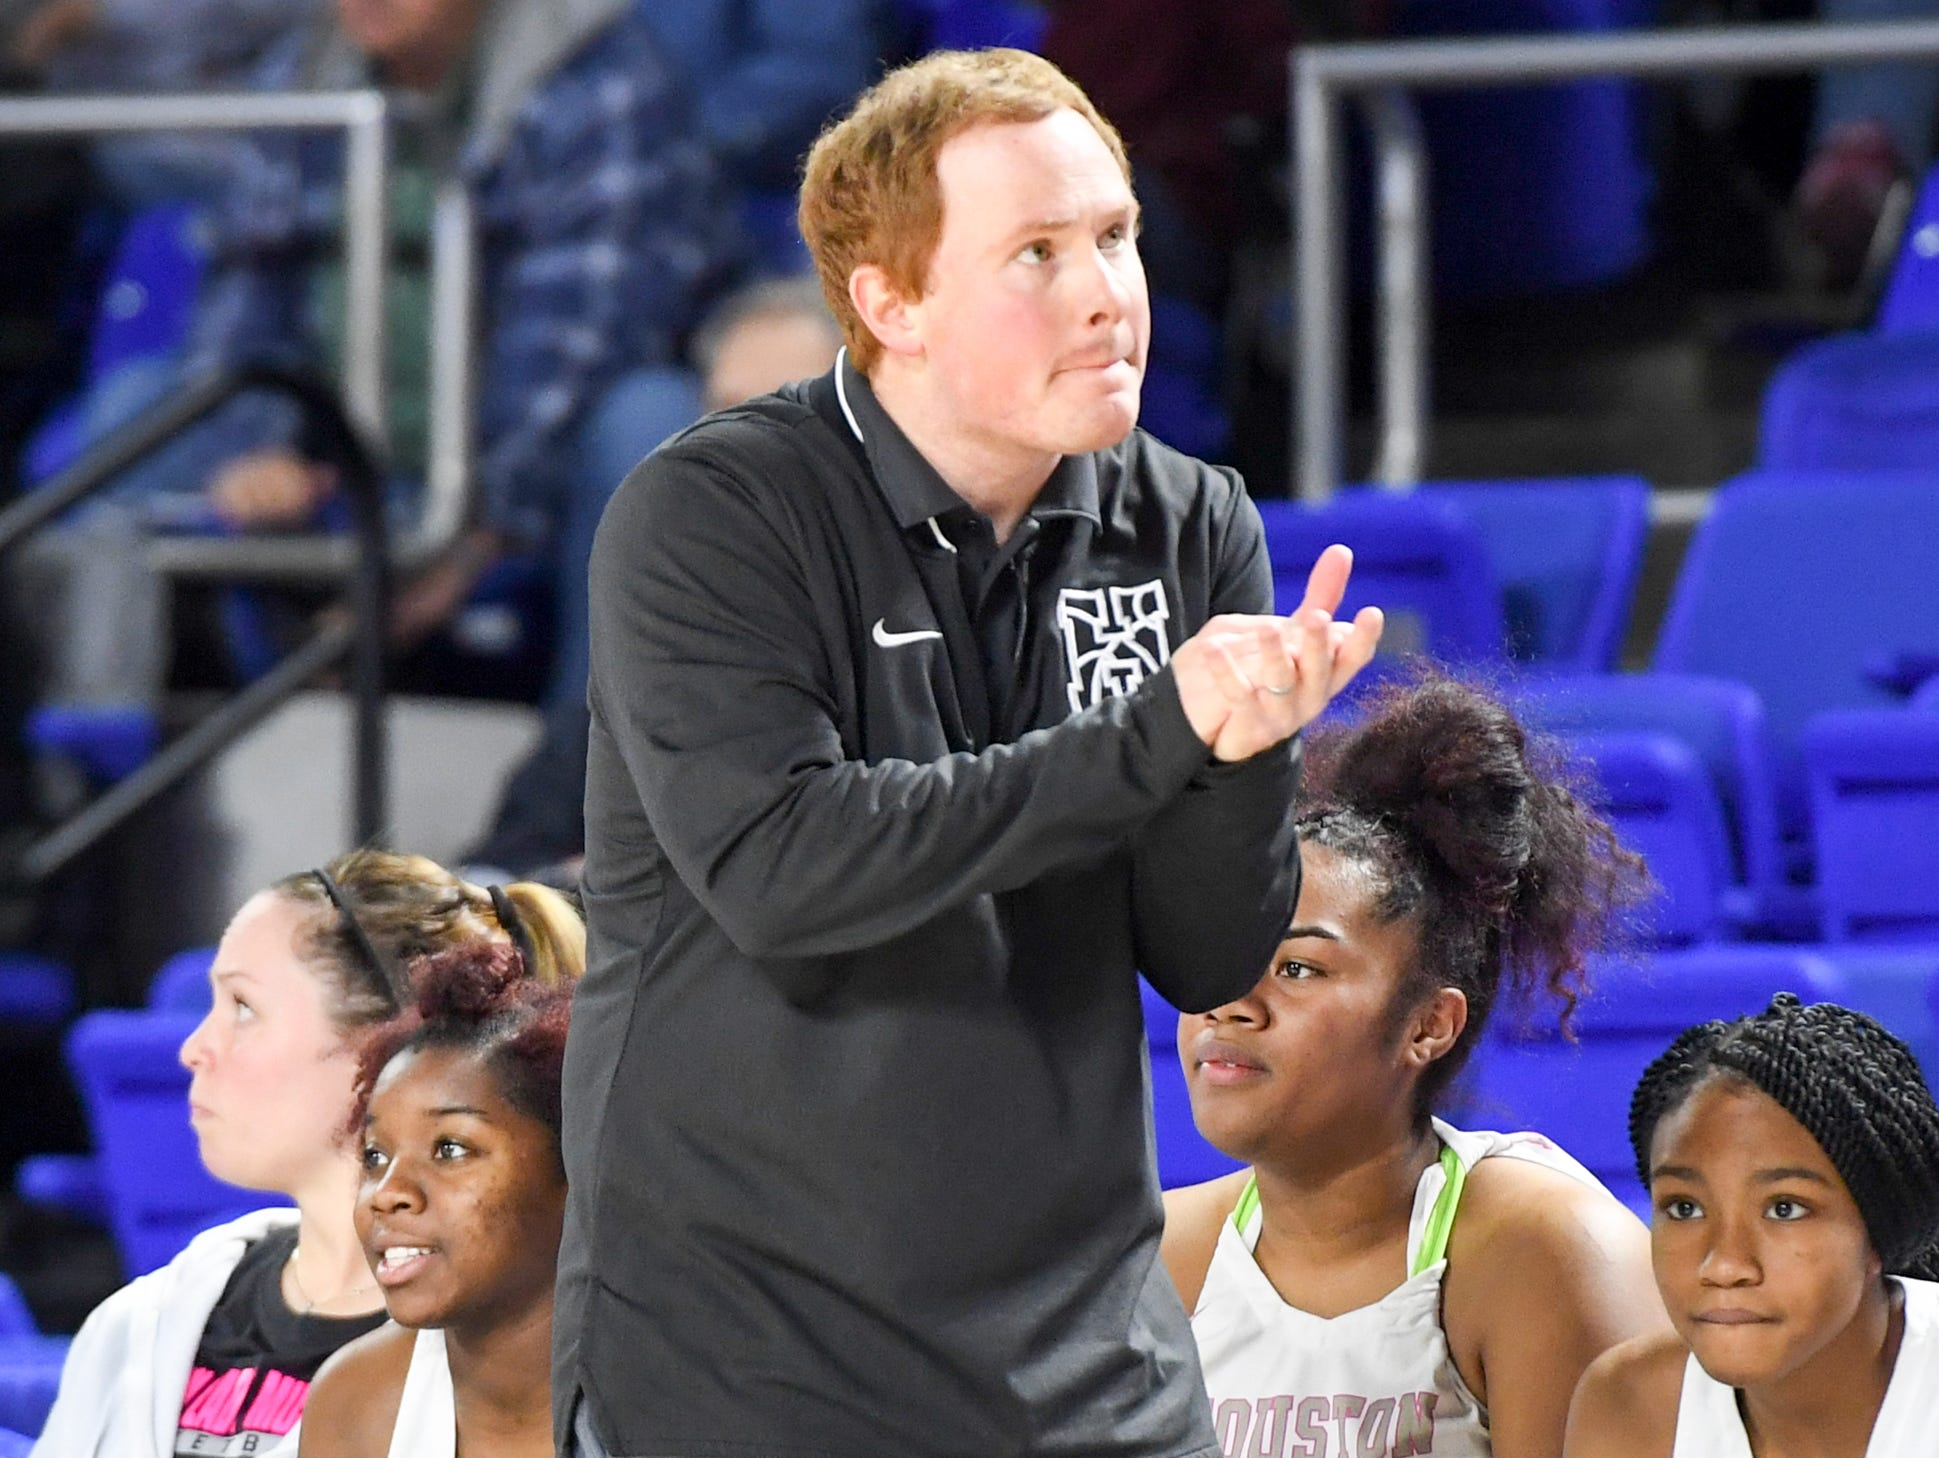 Houston's head coach Ben Moore claps as the seconds wind down during their Class AAA quarterfianl game against Mt. Juliet, Wednesday, March 6, 2019, in Murfreesboro. Houston defeated Mt. Juliet, 65-58.